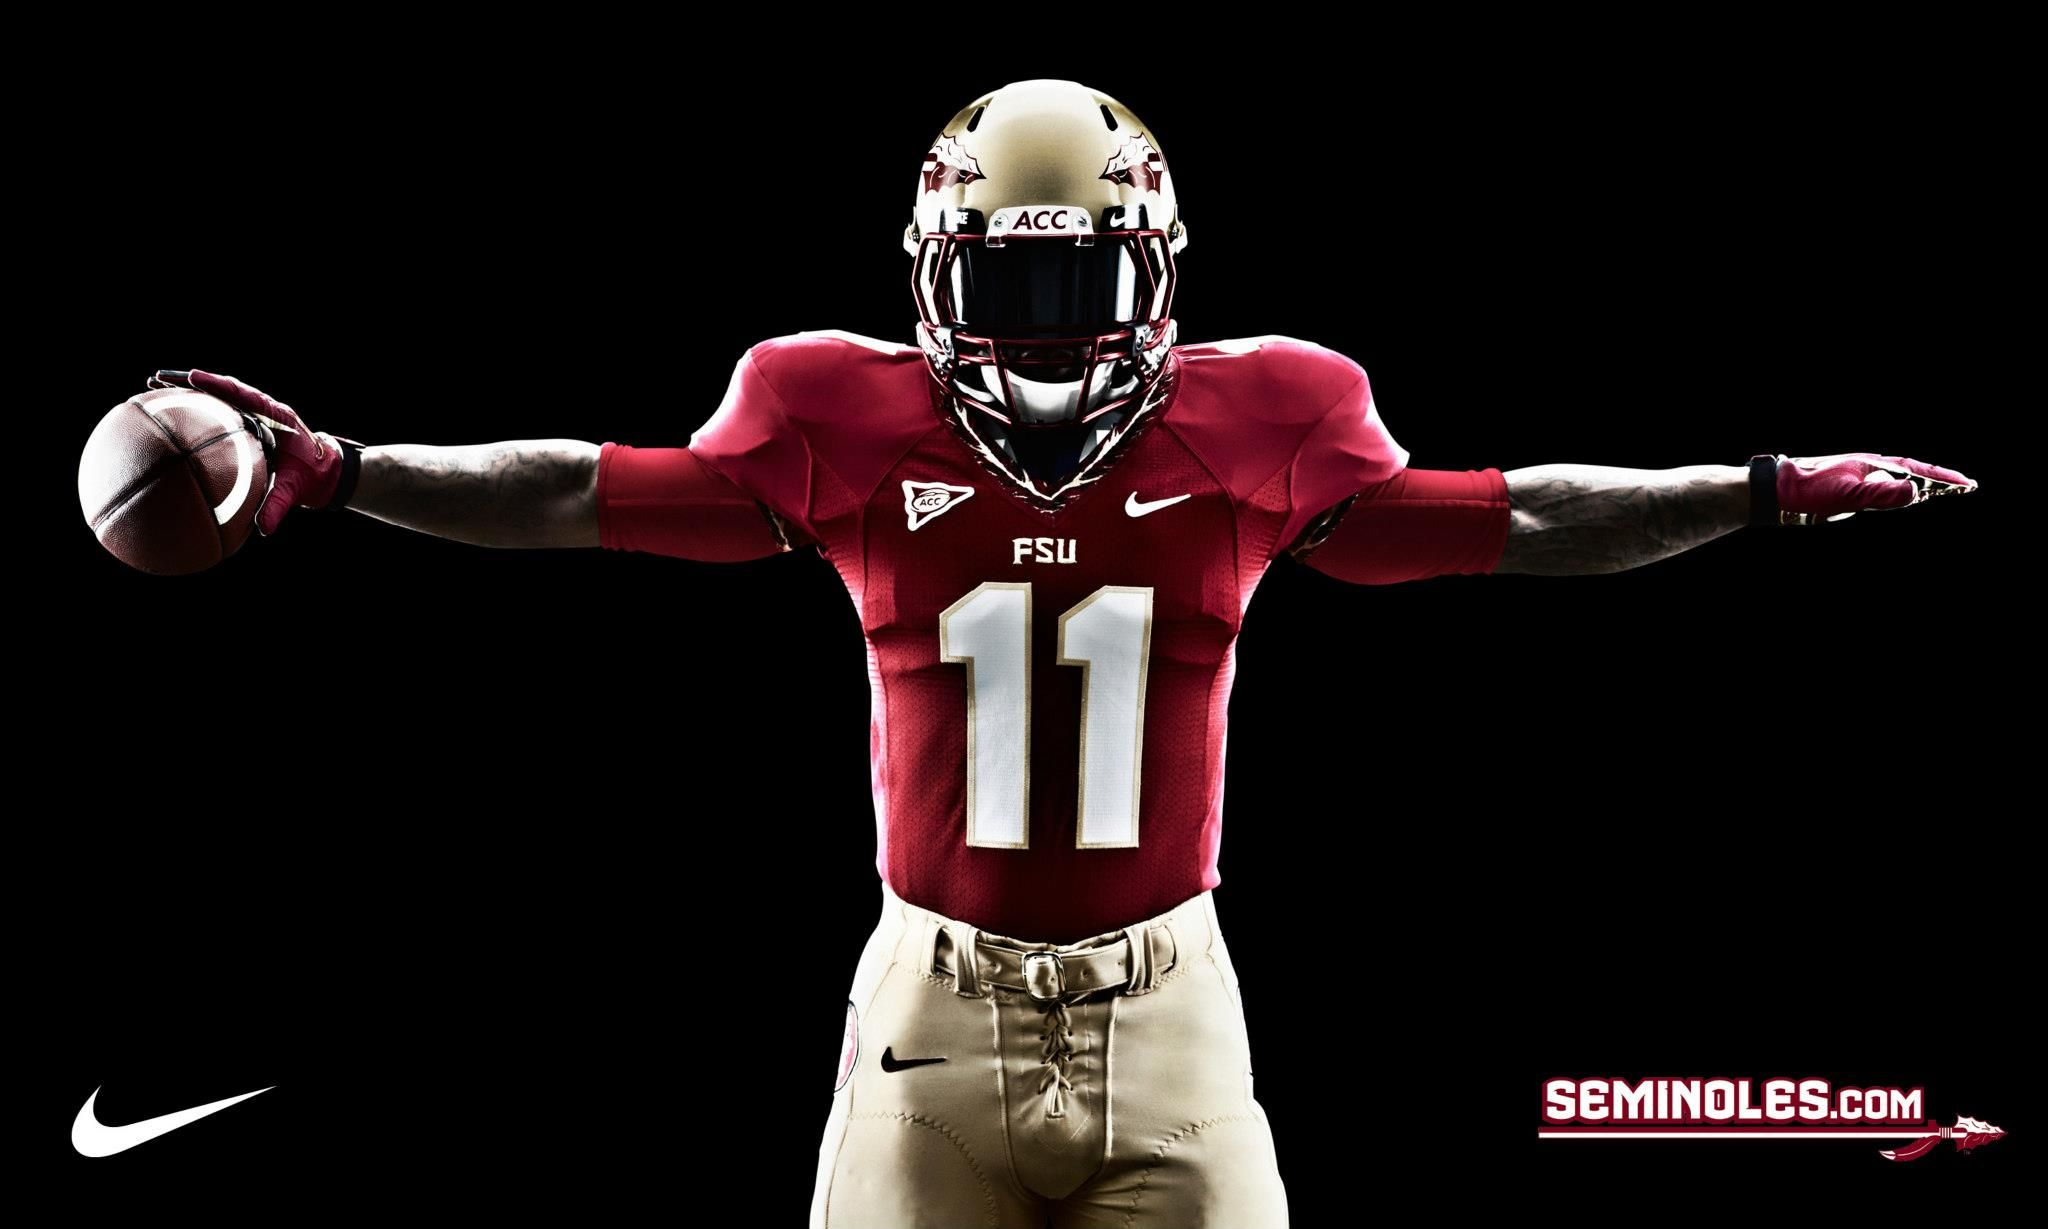 Fsu Football Logo Nike Fsu Florida State Football Uniform Wallpaper Www Wallpepperhd Fsu Football Football Florida State Football